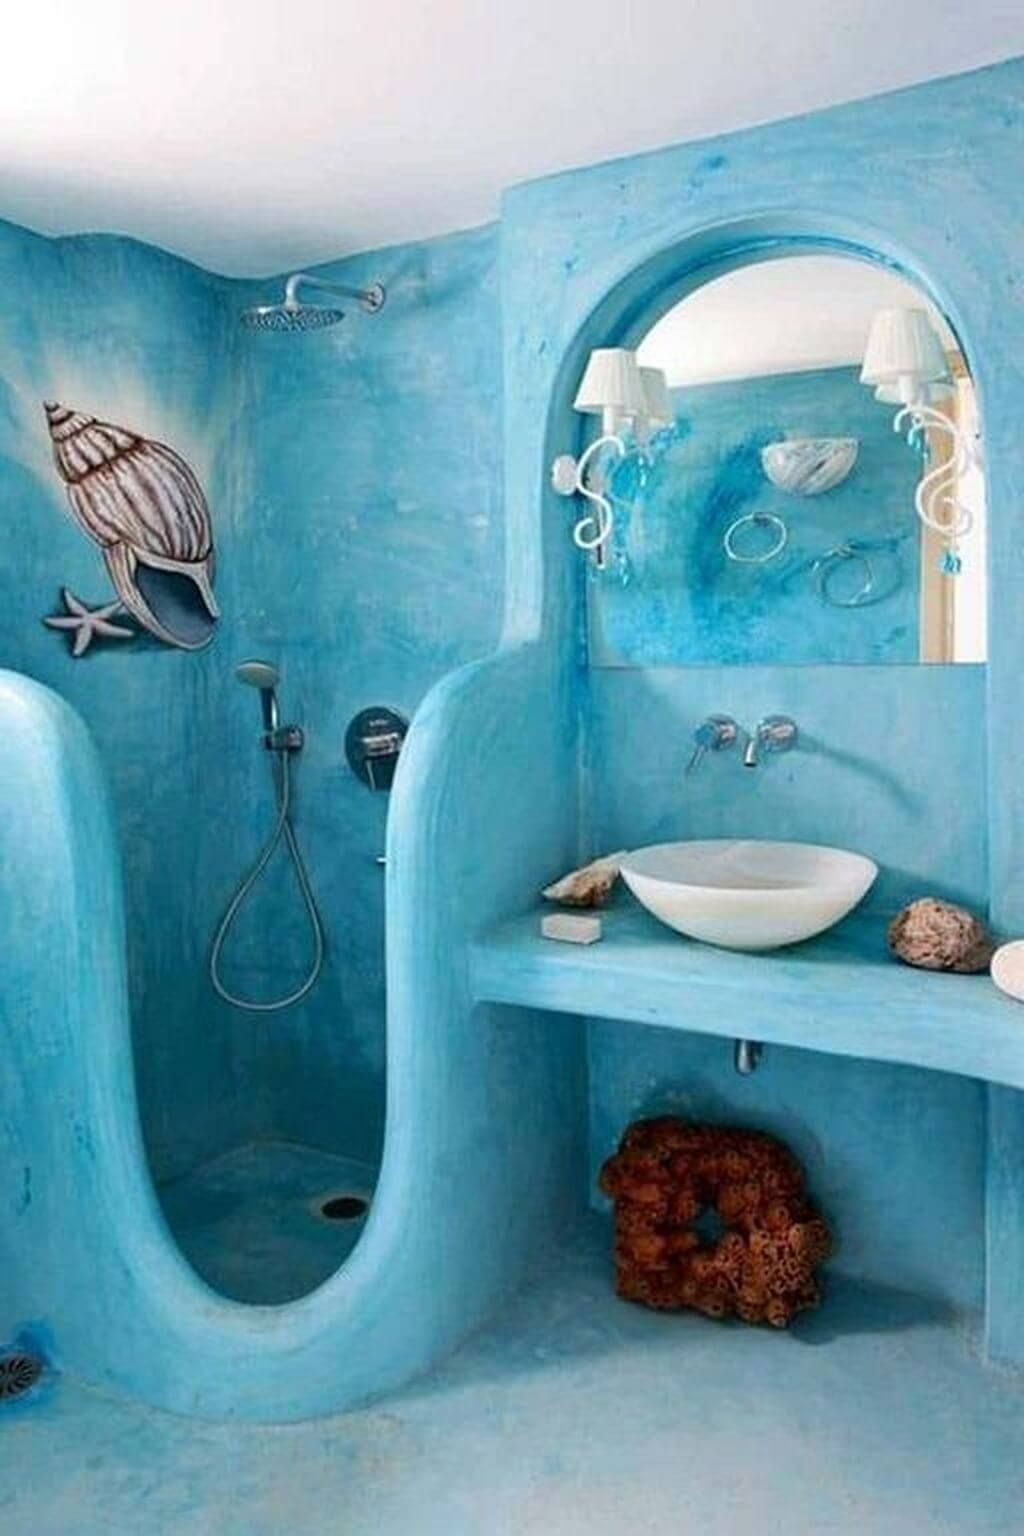 10 Ocean Bathroom Ideas 2020 Refreshing And Calm In 2020 Beach Theme Bathroom Mermaid Bathroom Beach Bathroom Decor